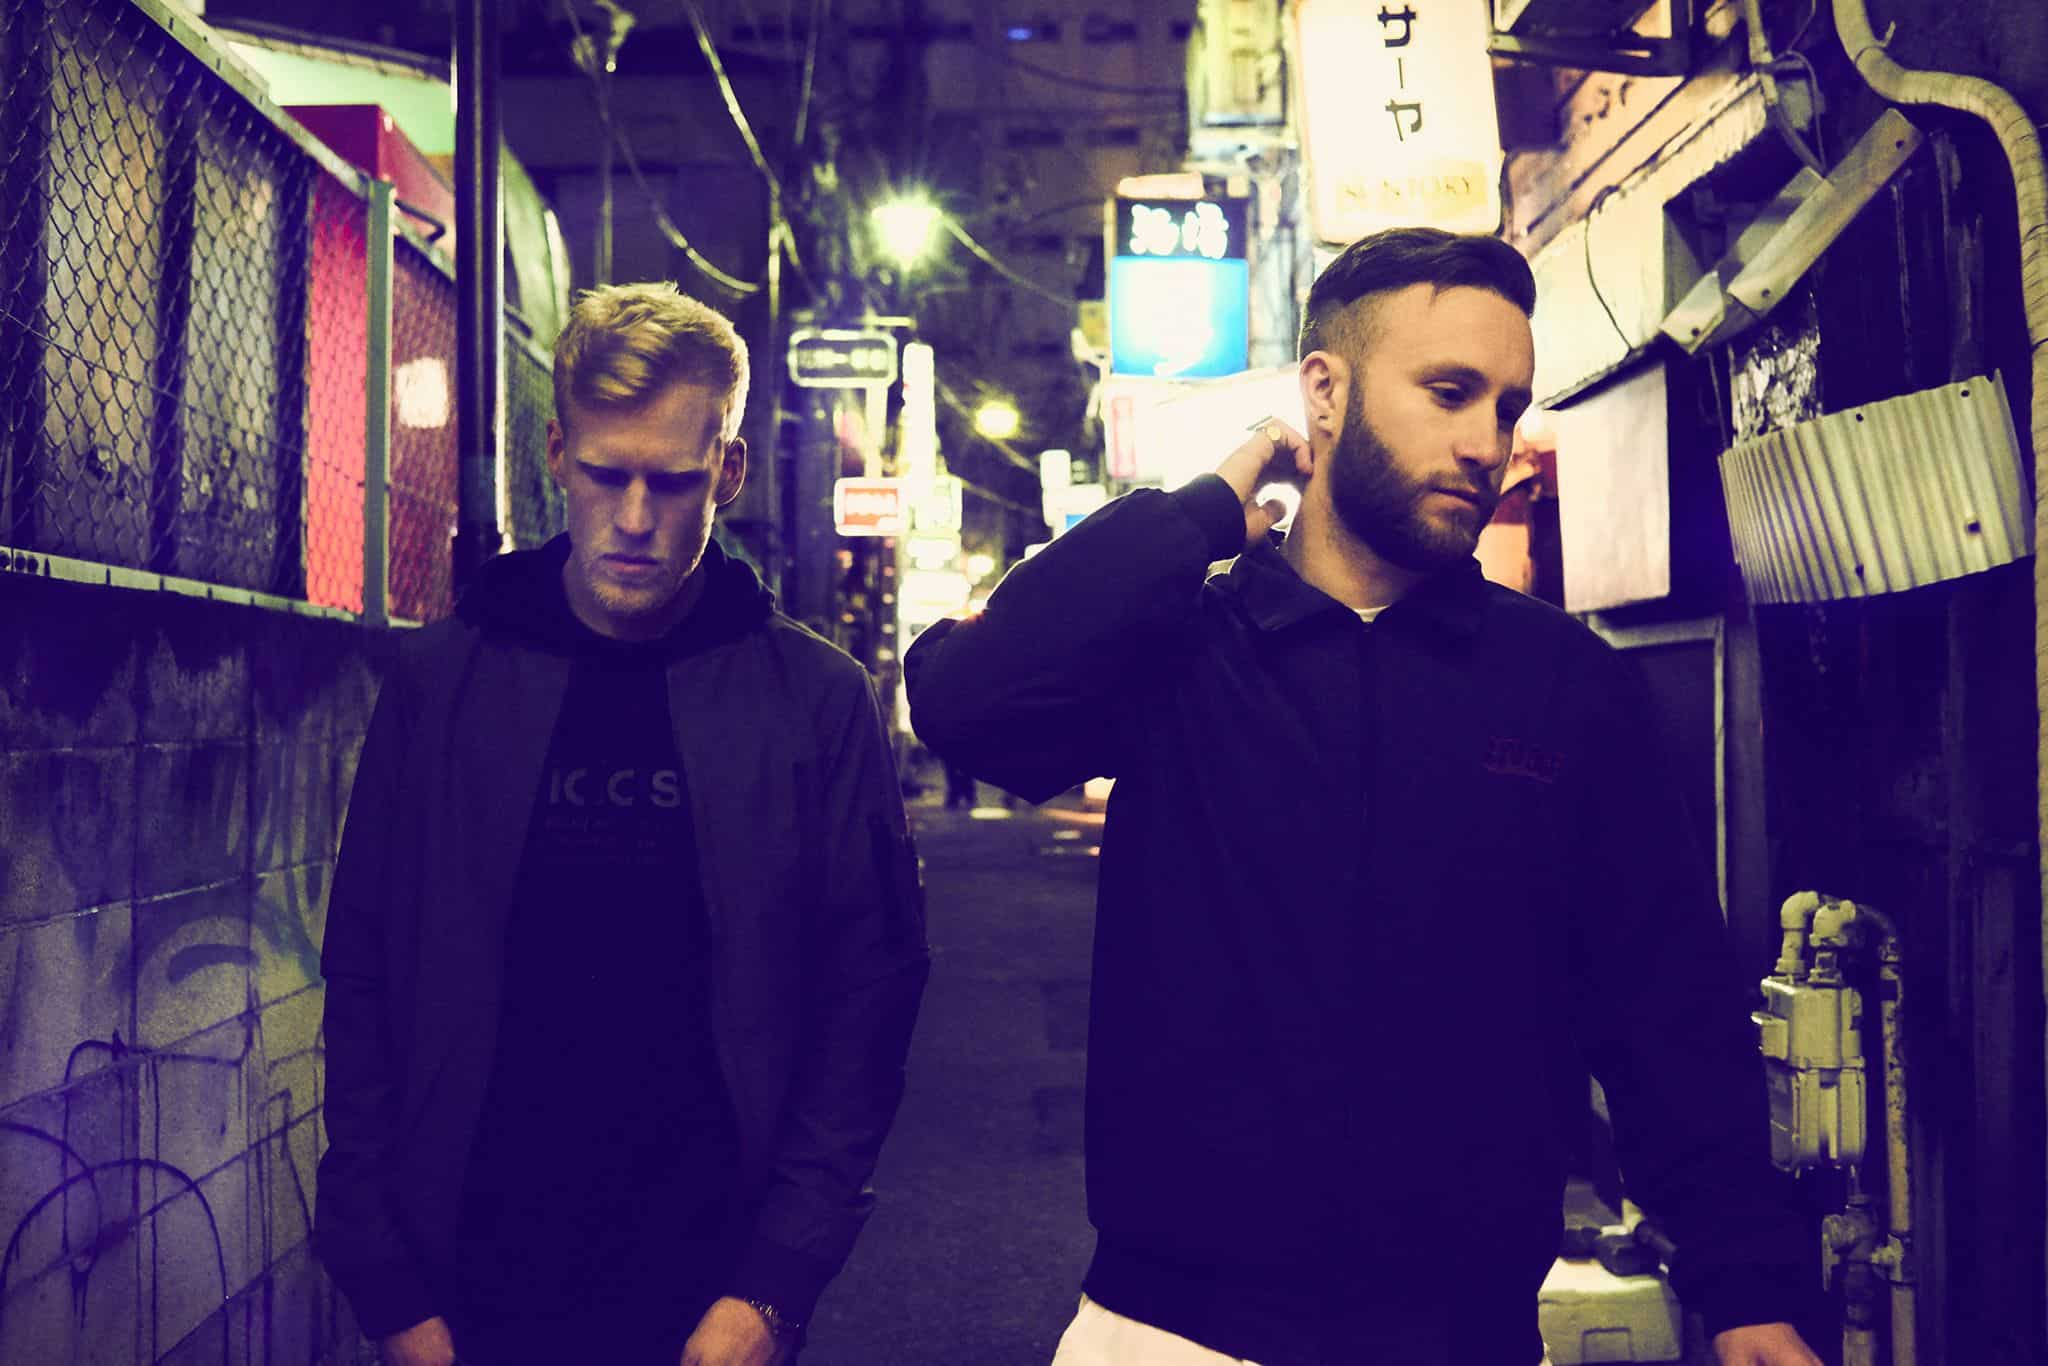 Snakehips Release 'Stay Home Tapes' EP and Act 3 Music Video